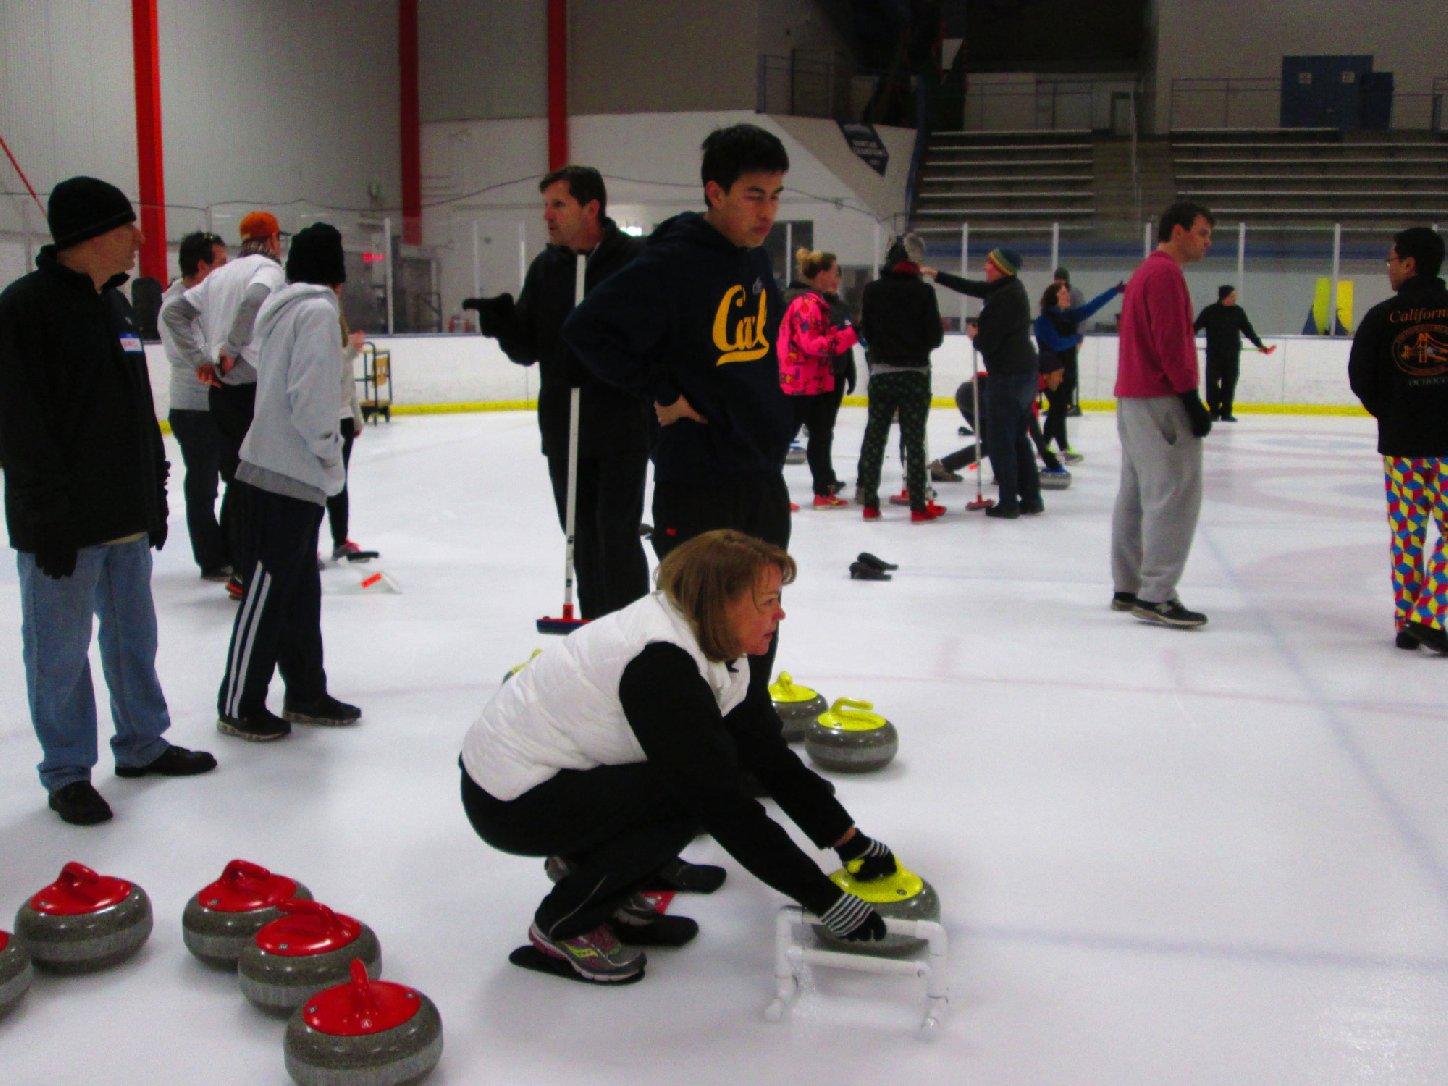 Bay Area Curling Club instructor Joseph Tang shows aspiring curler Nancy Carruth of San Francisco the basics at the Oakland Ice Arena on Feb. 1, 2014. (Nina Thorsen/KQED)